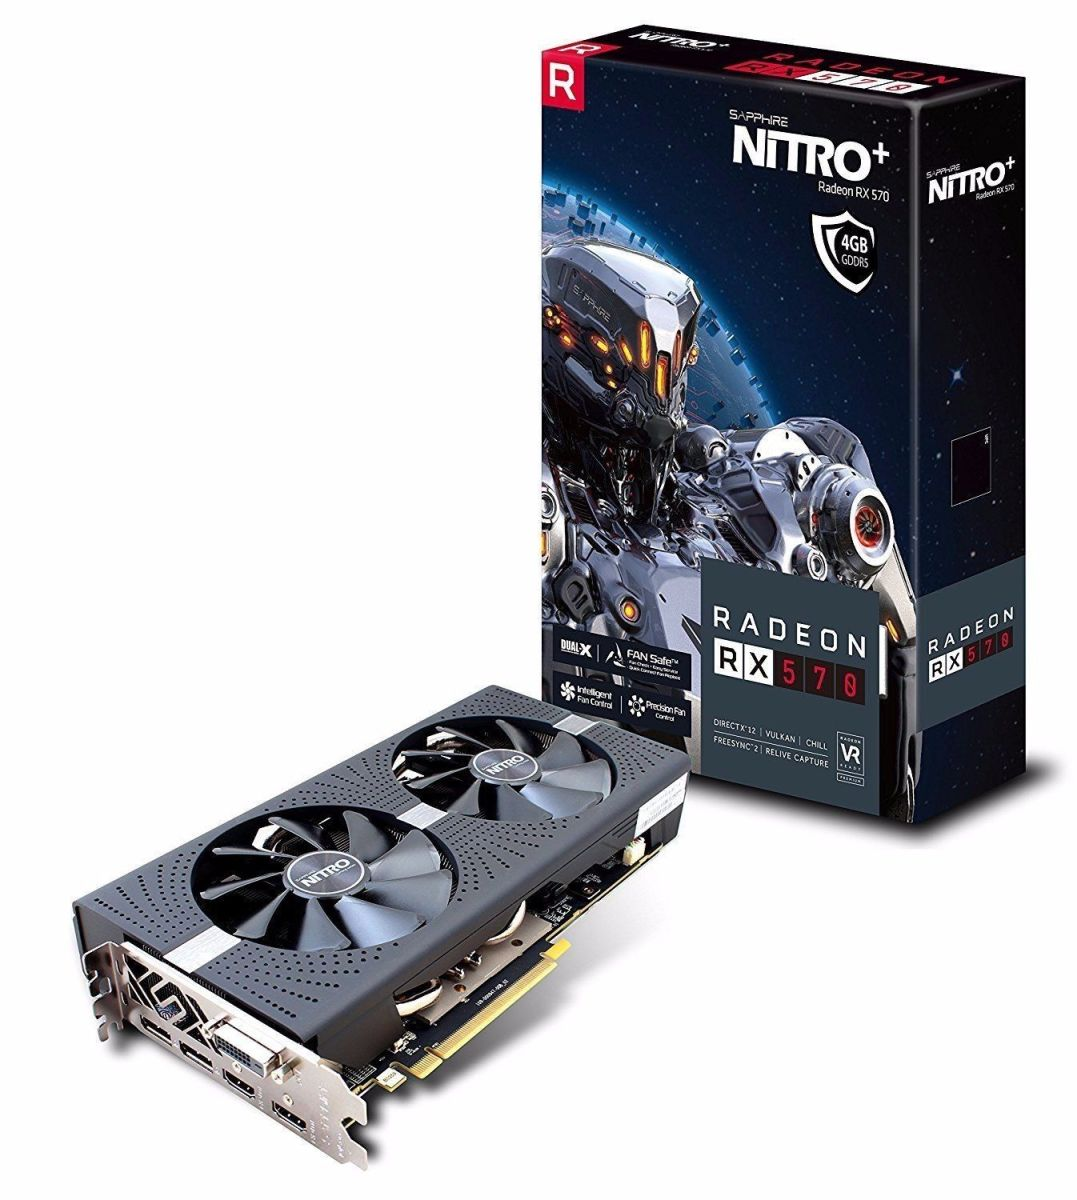 Sapphire NITRO+ Radeon RX 570 4GB Graphics Card Review and Benchmarks